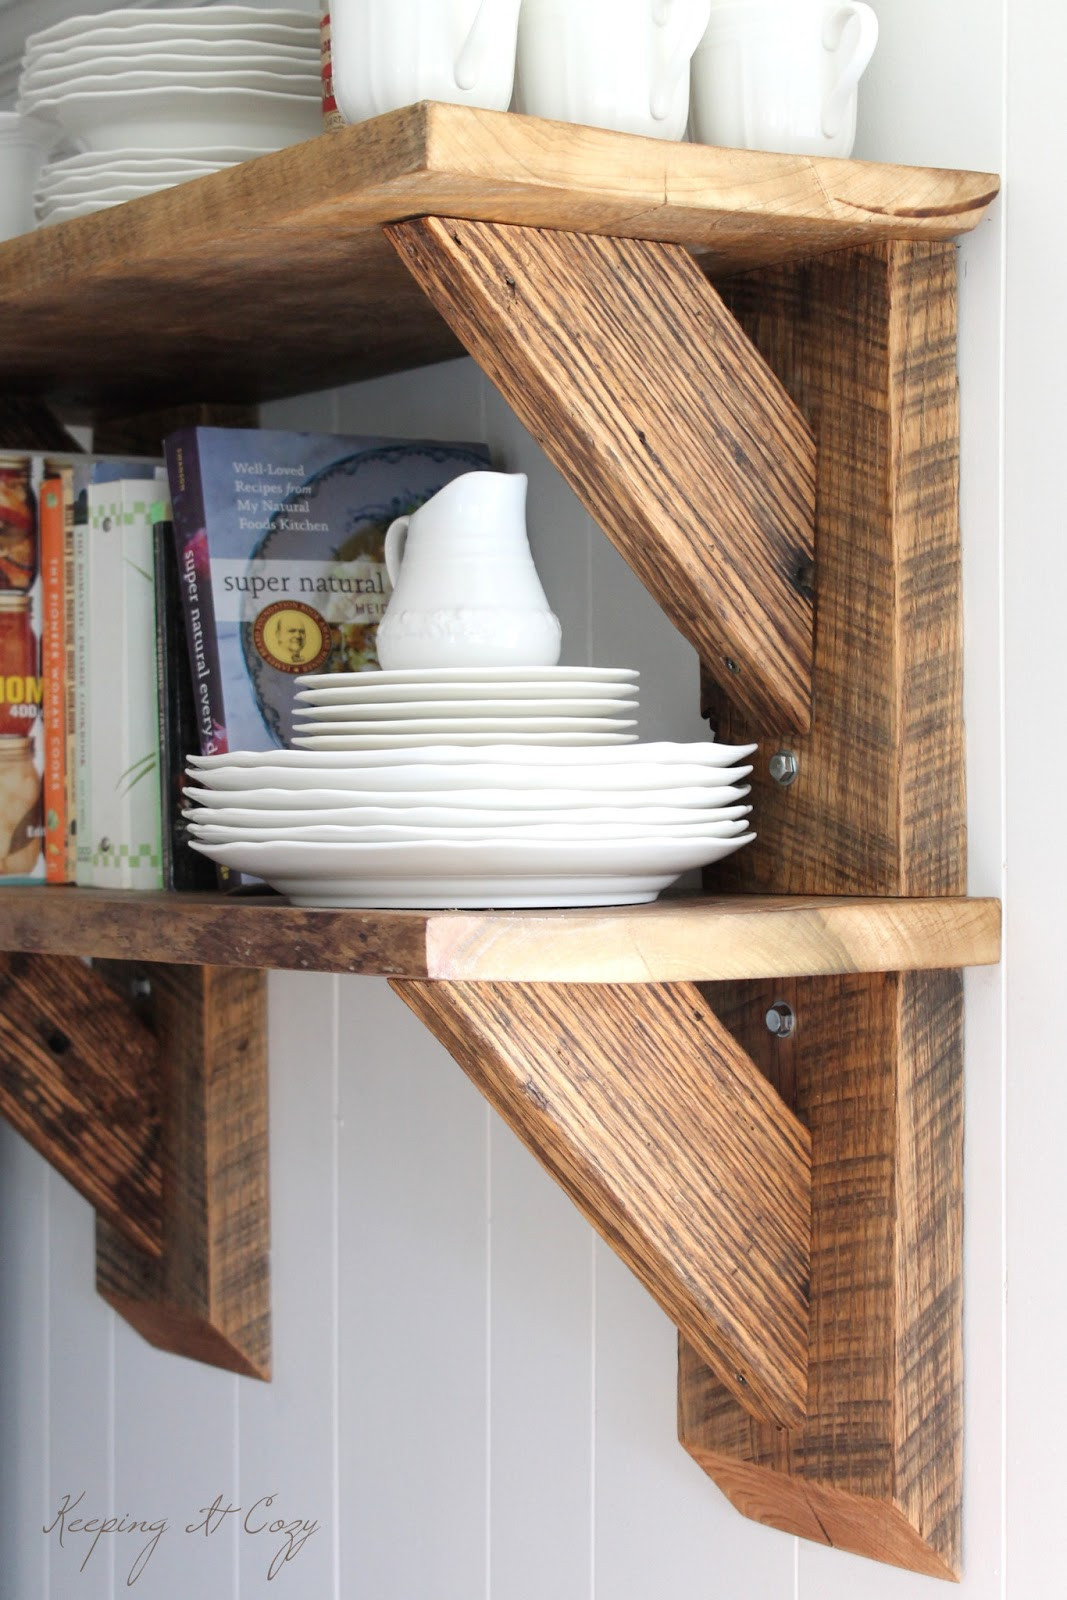 Best ideas about Kitchen Shelves DIY . Save or Pin Keeping It Cozy Reclaimed Wood Kitchen Shelves Now.